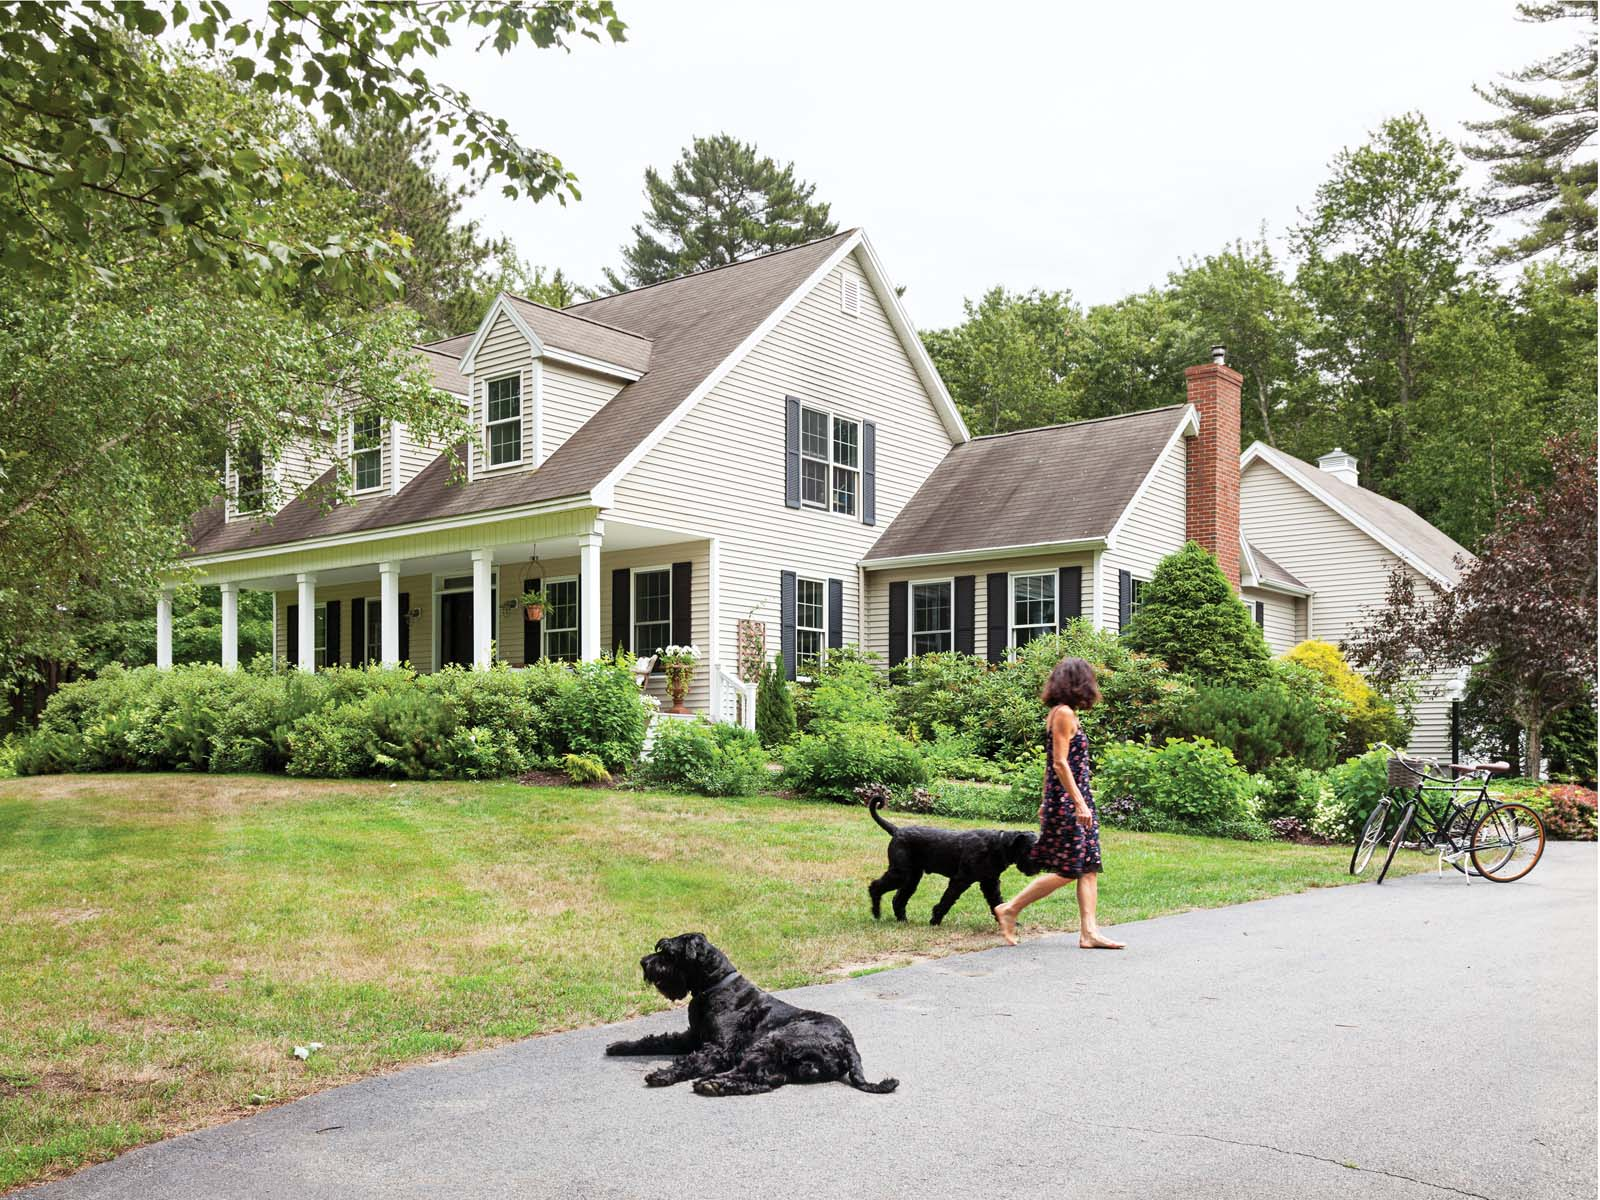 Maine Home Design Architecture Art And Good Living - Good home design